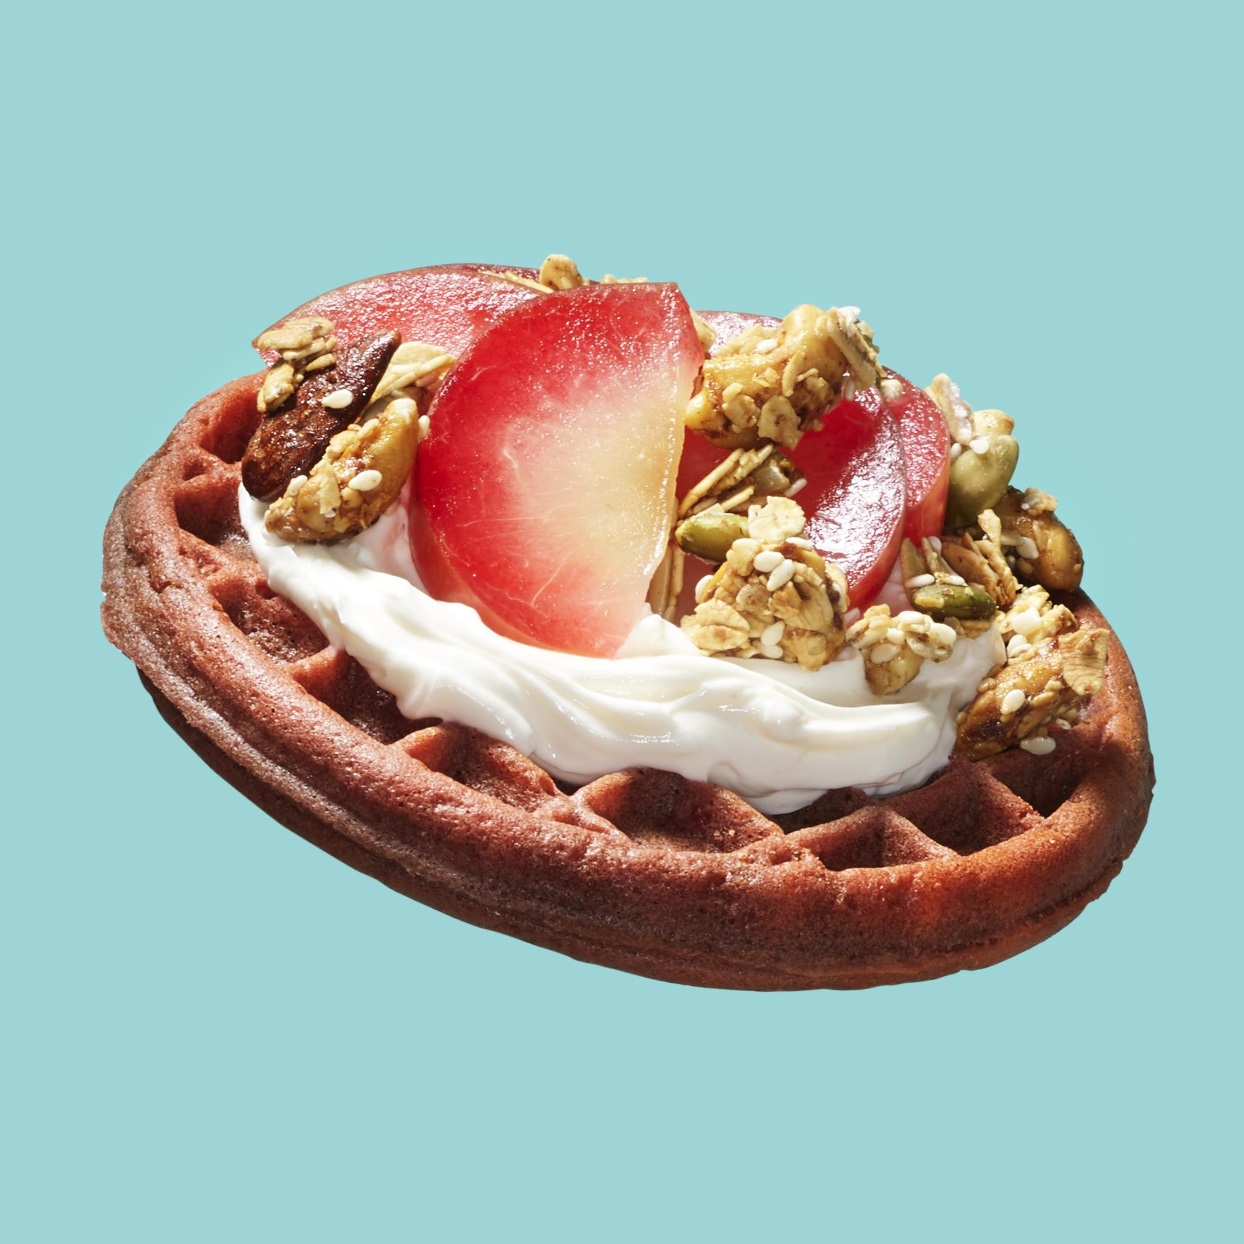 Top a toasted frozen waffle with cream cheese, plums and granola for a healthy breakfast in a pinch. Loaded with protein, fiber and whole grains, this recipe will keep you full and satisfied all morning. Source: EatingWell Magazine, September 2019